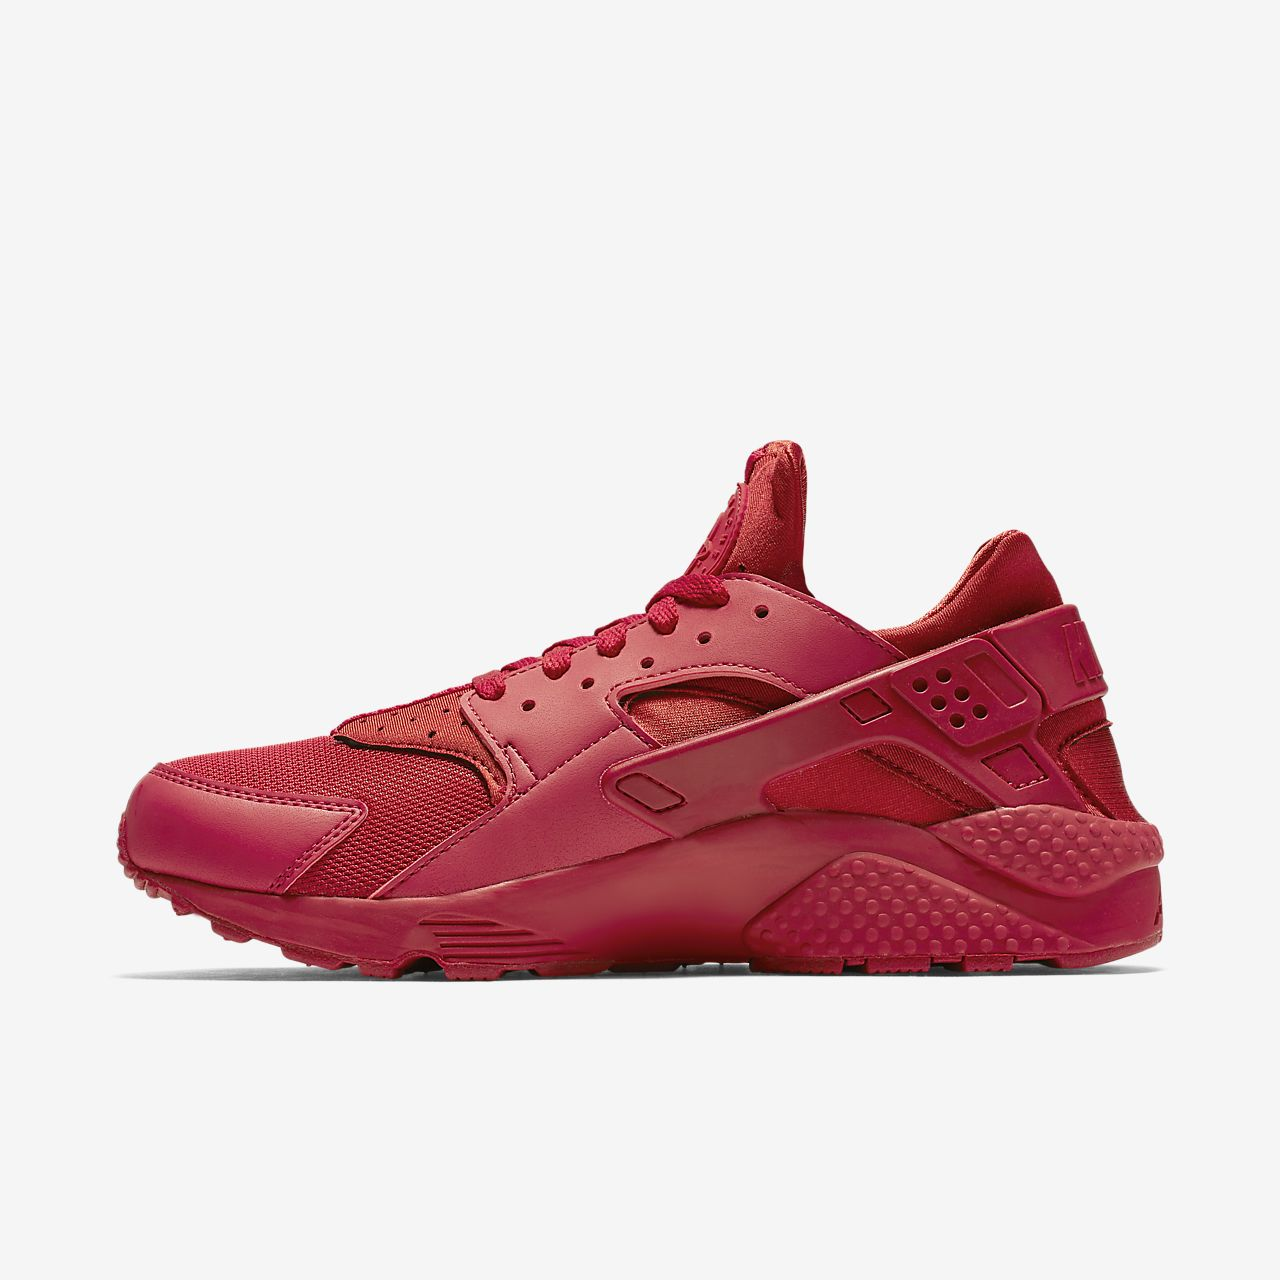 5688992d12ba7 Nike Air Huarache Men s Shoe. Nike.com